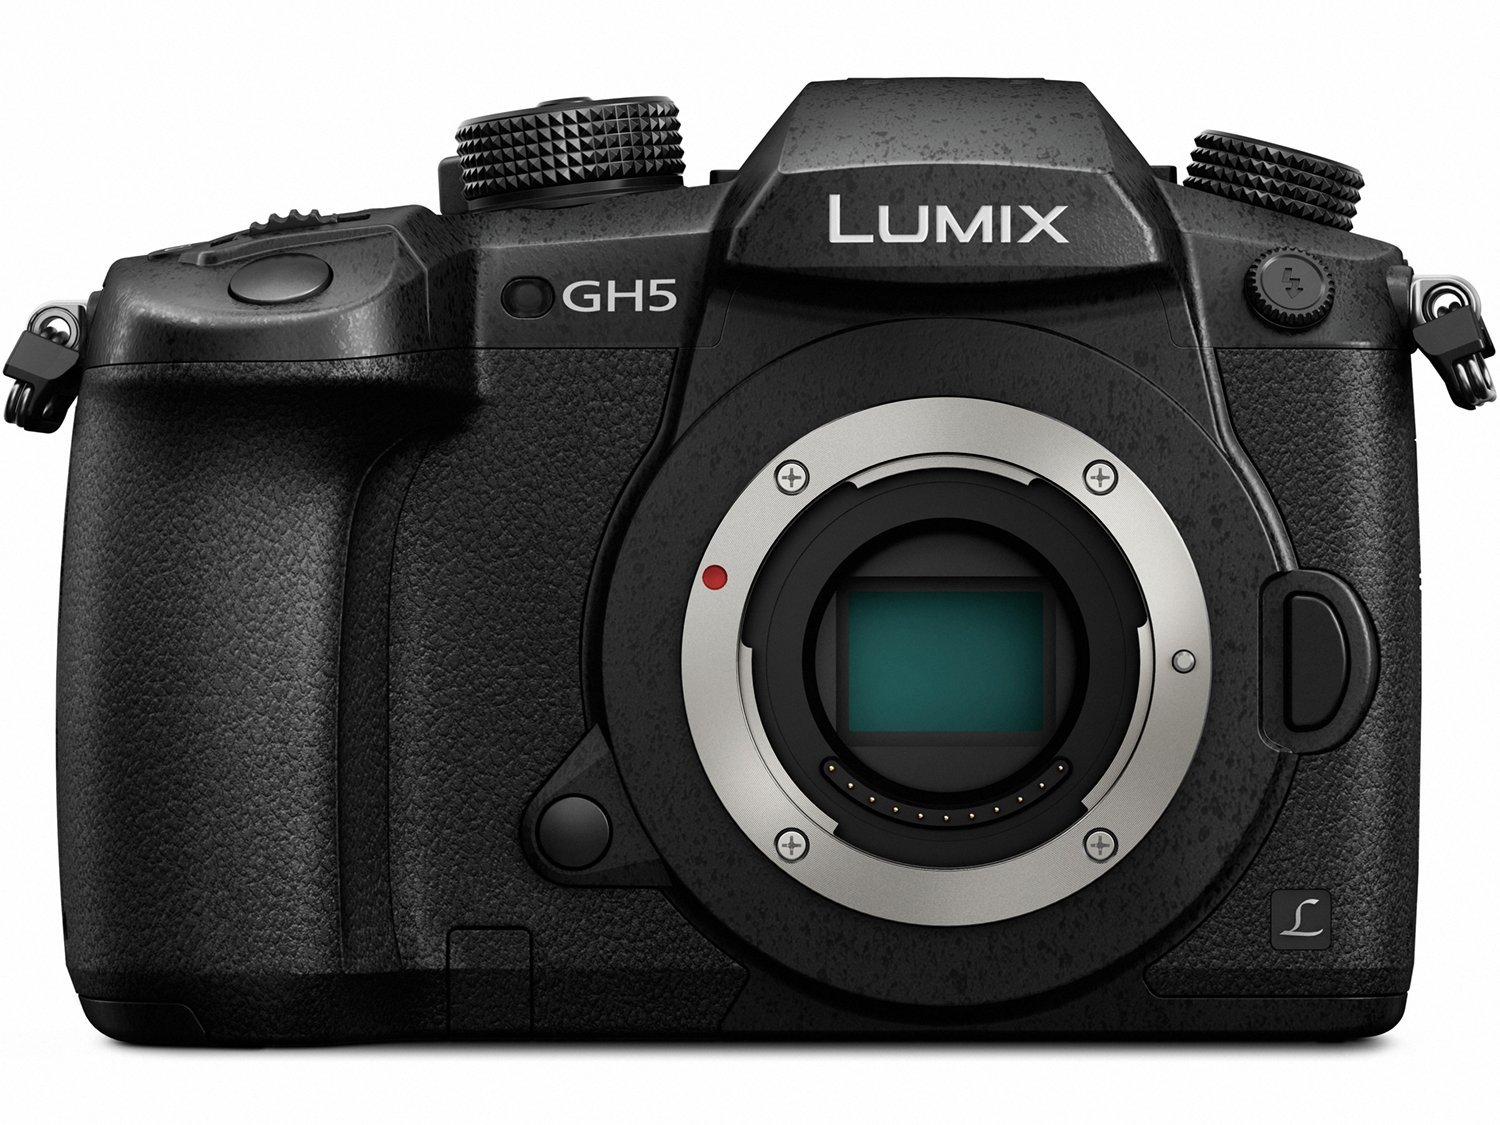 Panasonic Lumix GH5 Body 4K Mirrorless ILC Camera, with 20.3 Megapixels - Available in 7 Different Packages.